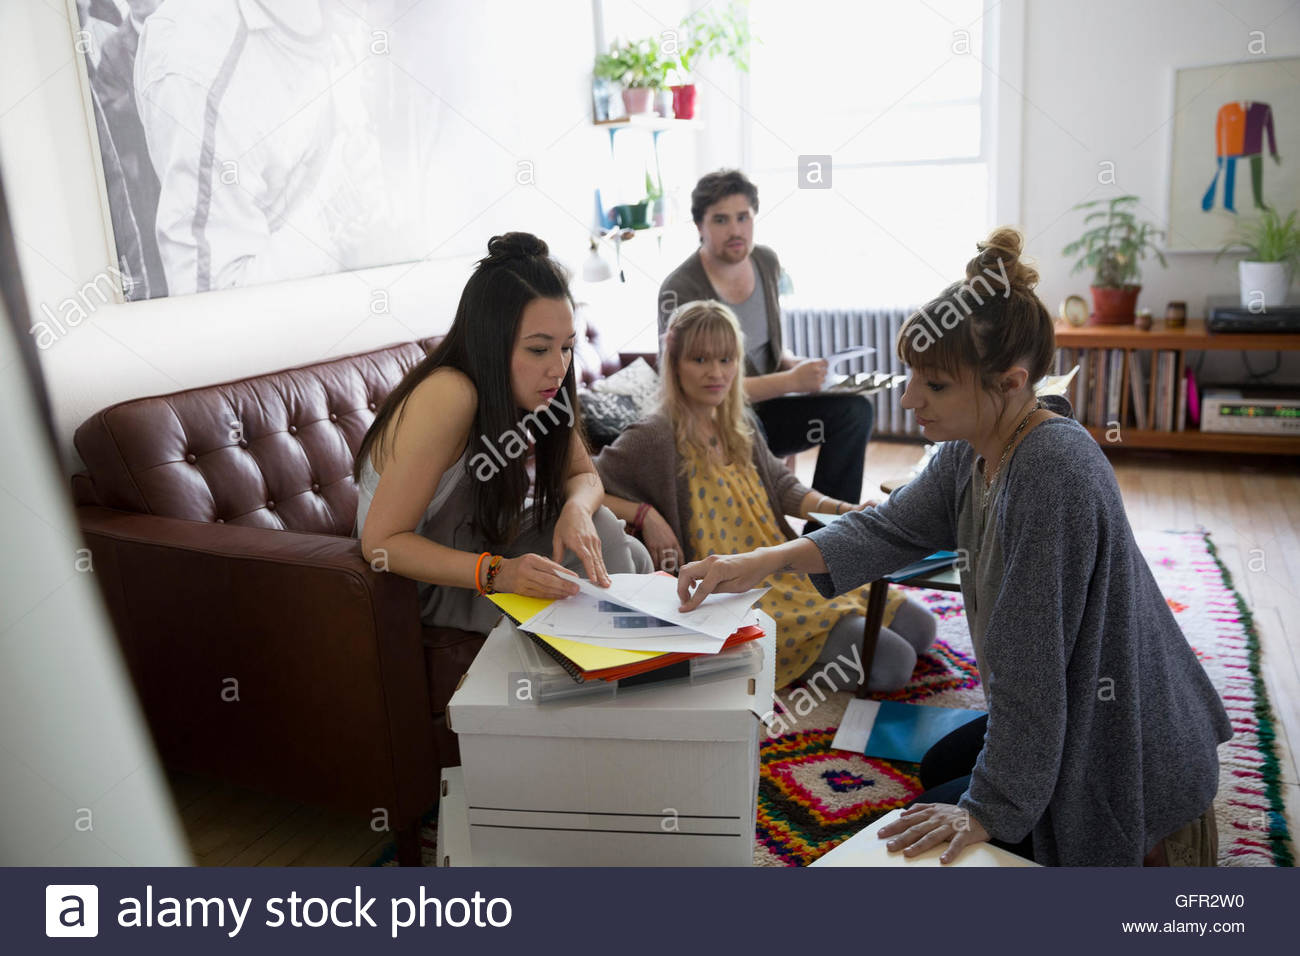 Young activists meeting and planning in living room - Stock Image